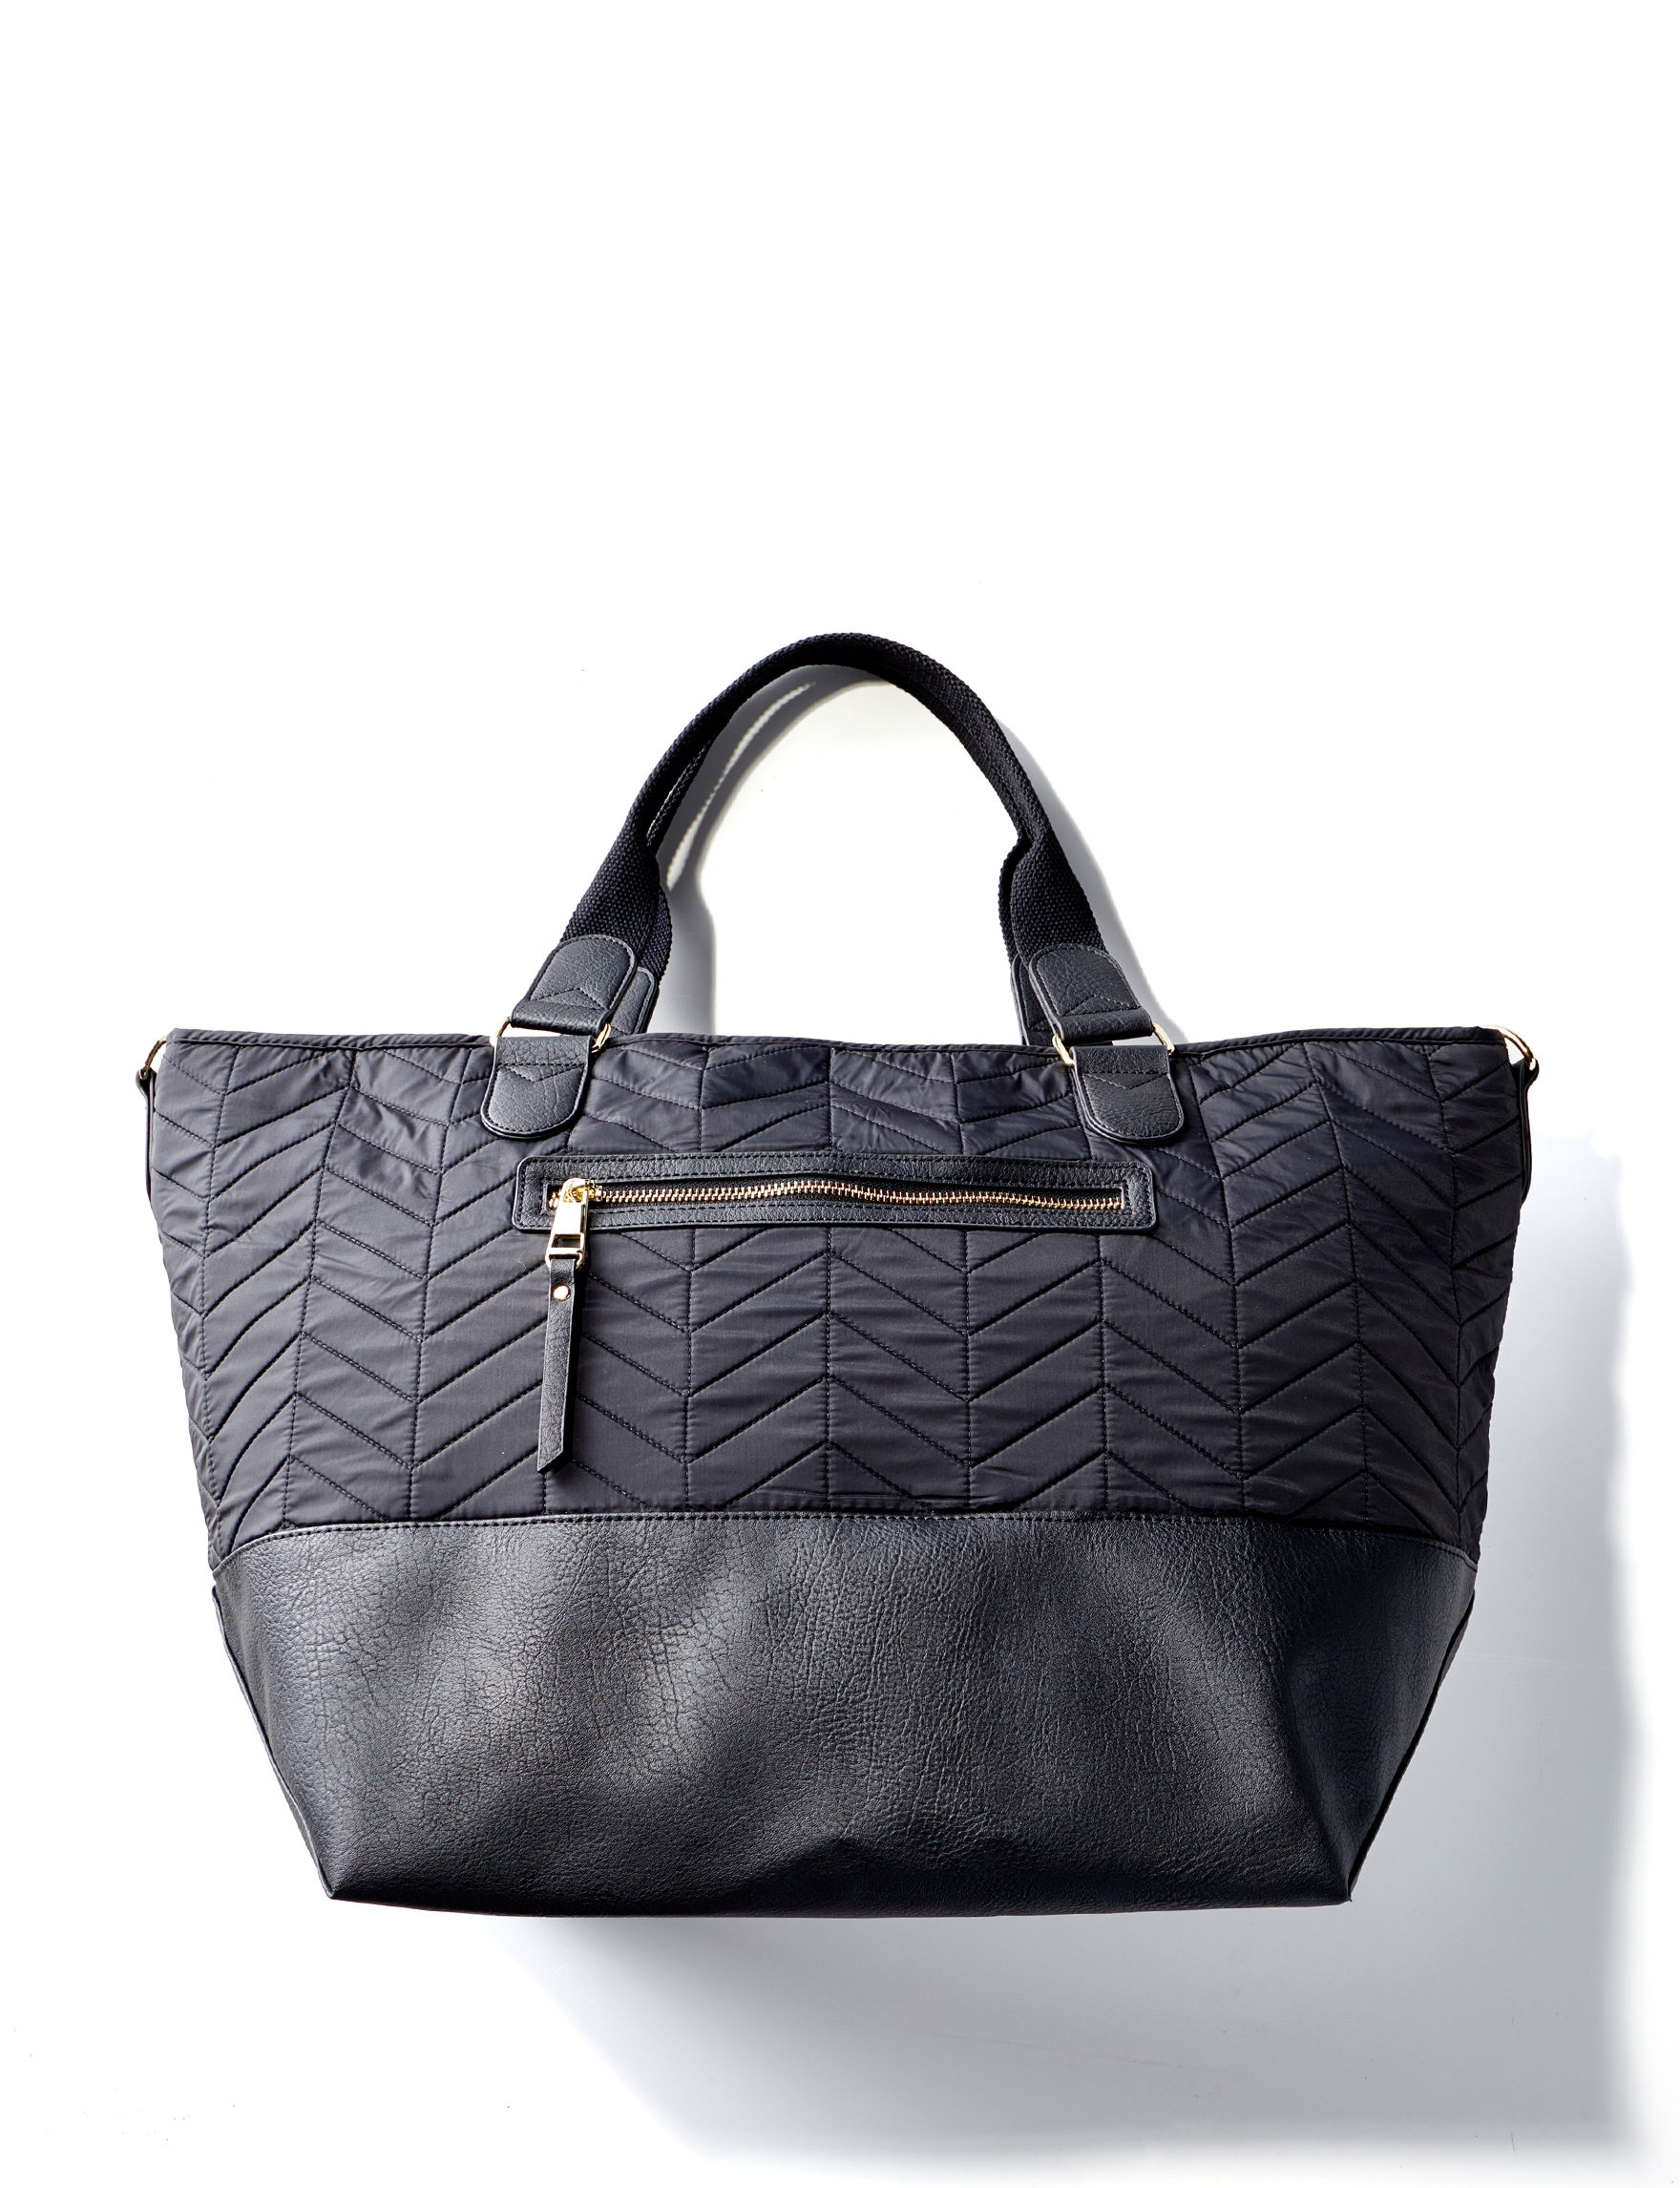 Madden Girl Black Weekend Bags